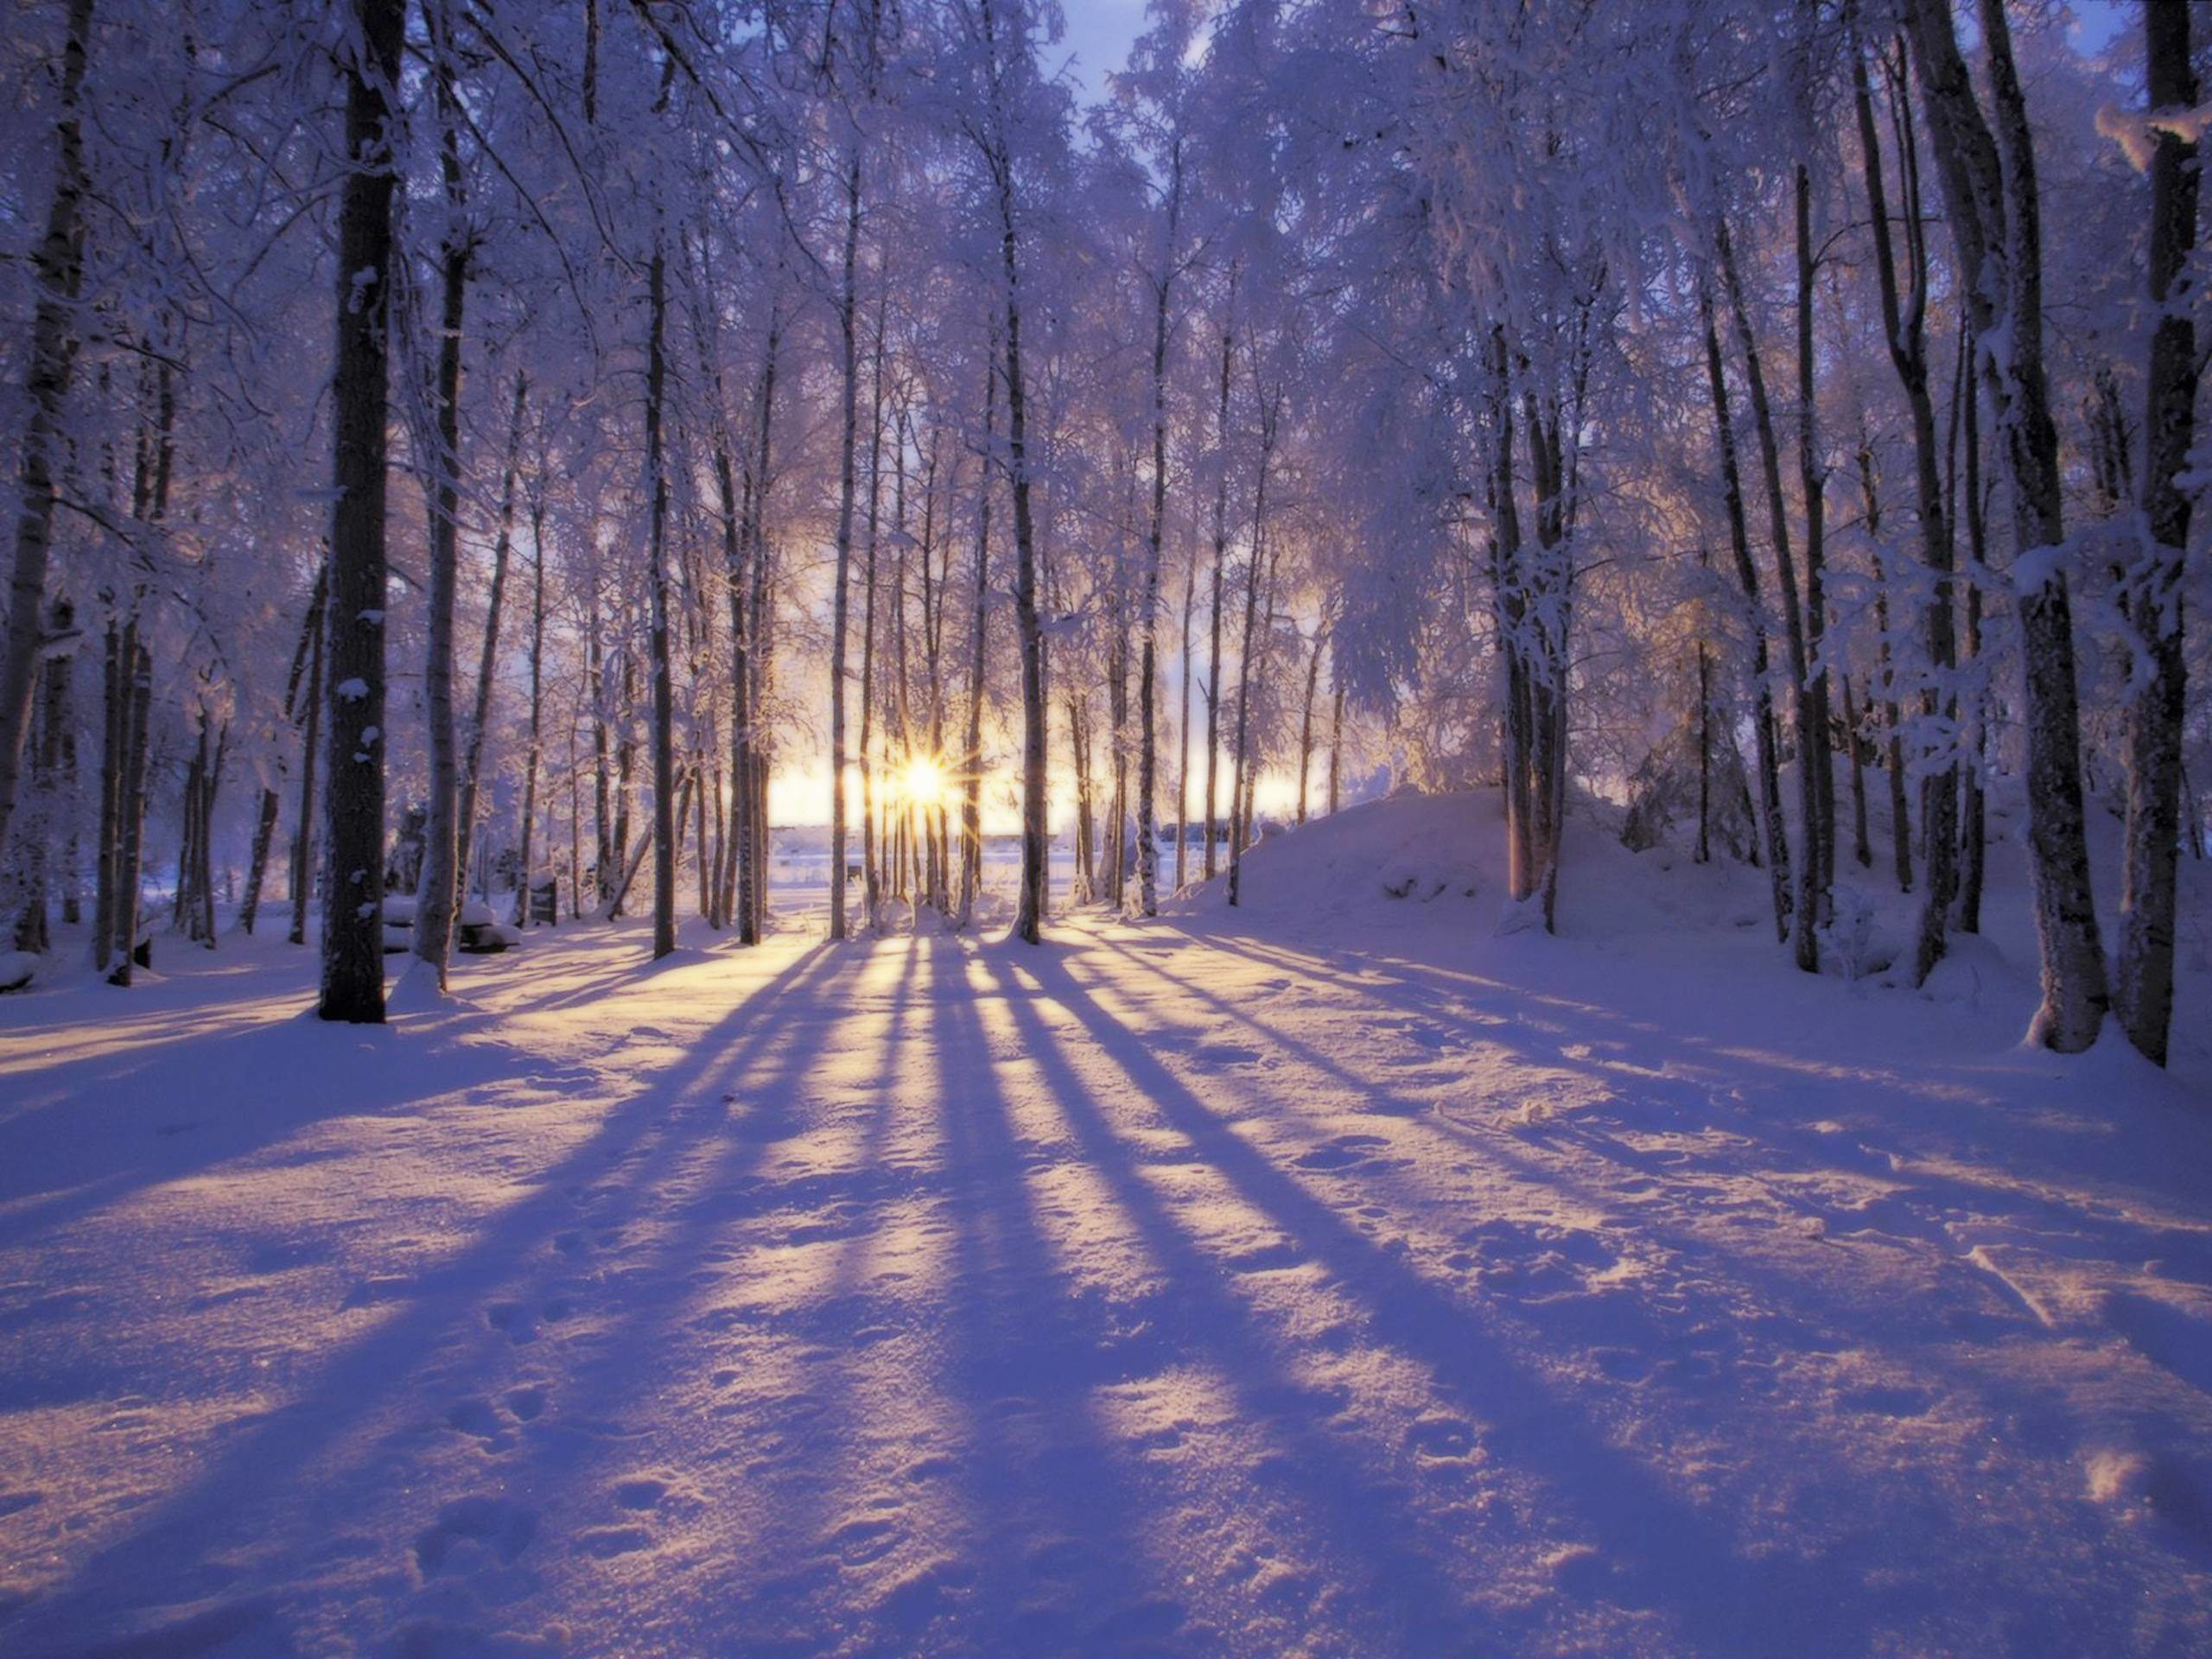 2560x1920 Winter Scenes for Desktop Wallpapers - HD Wallpapers Inn